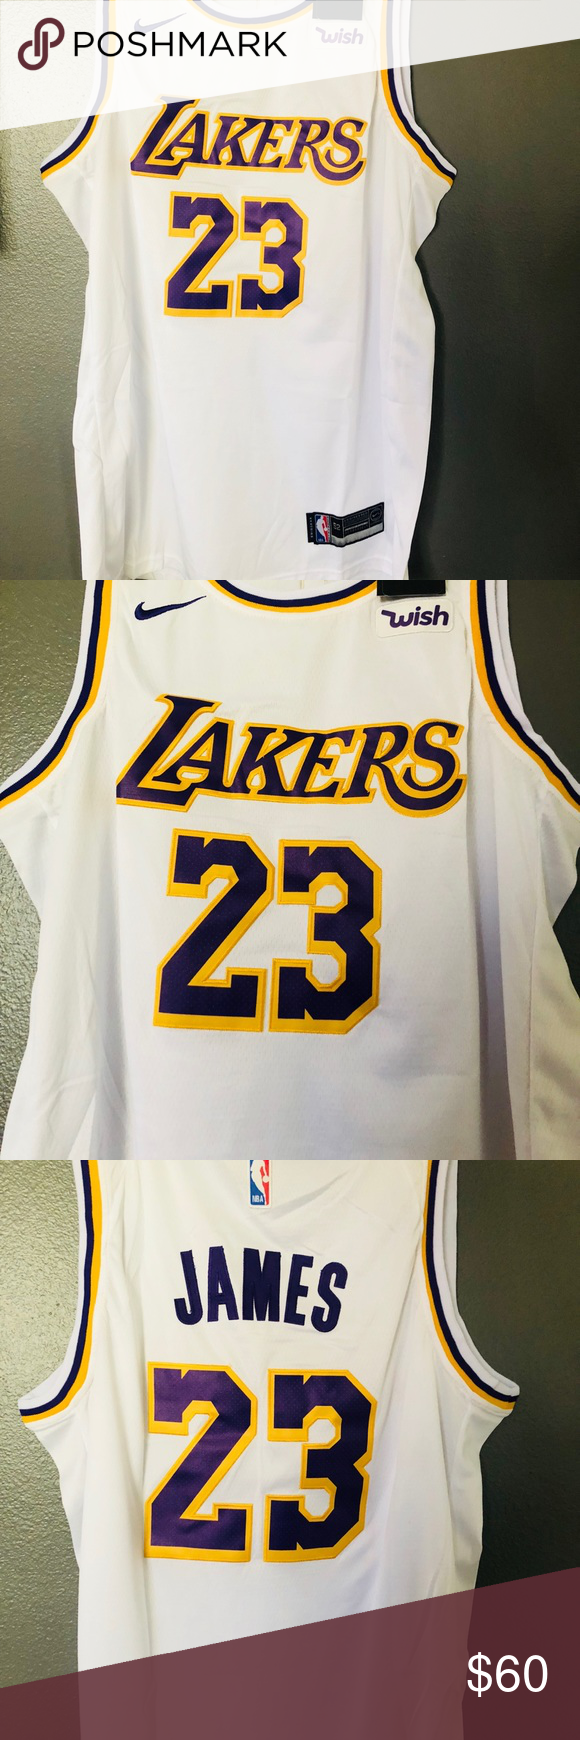 half off 64172 f6cc0 NWT Lebron James Laker Jersey White 🔥🔥 Excellent quality ...